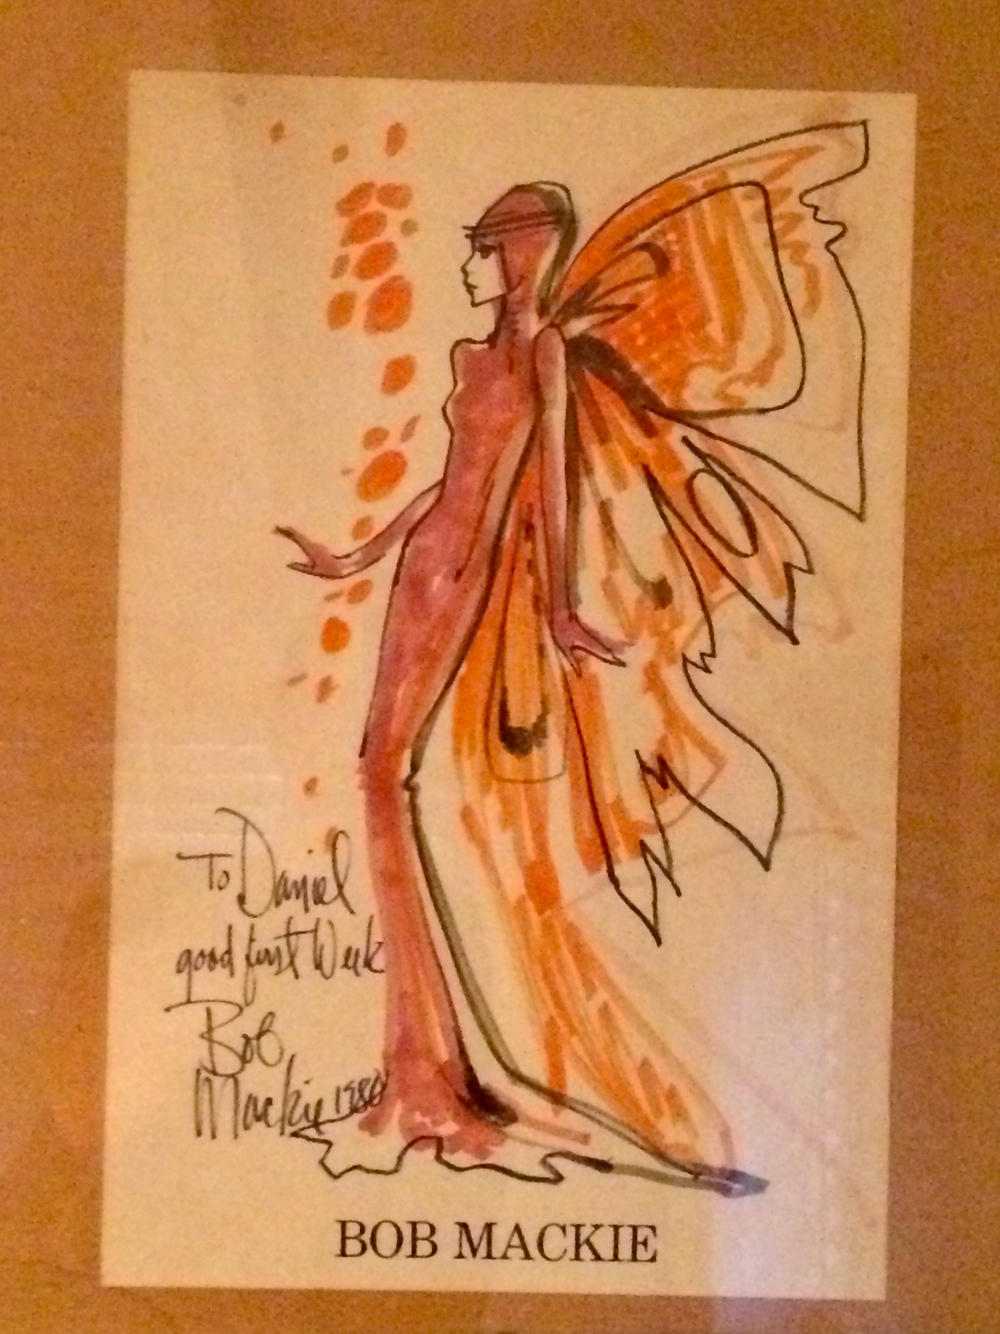 A gift Daniel got from Bob Mackie after his first week of working for him.